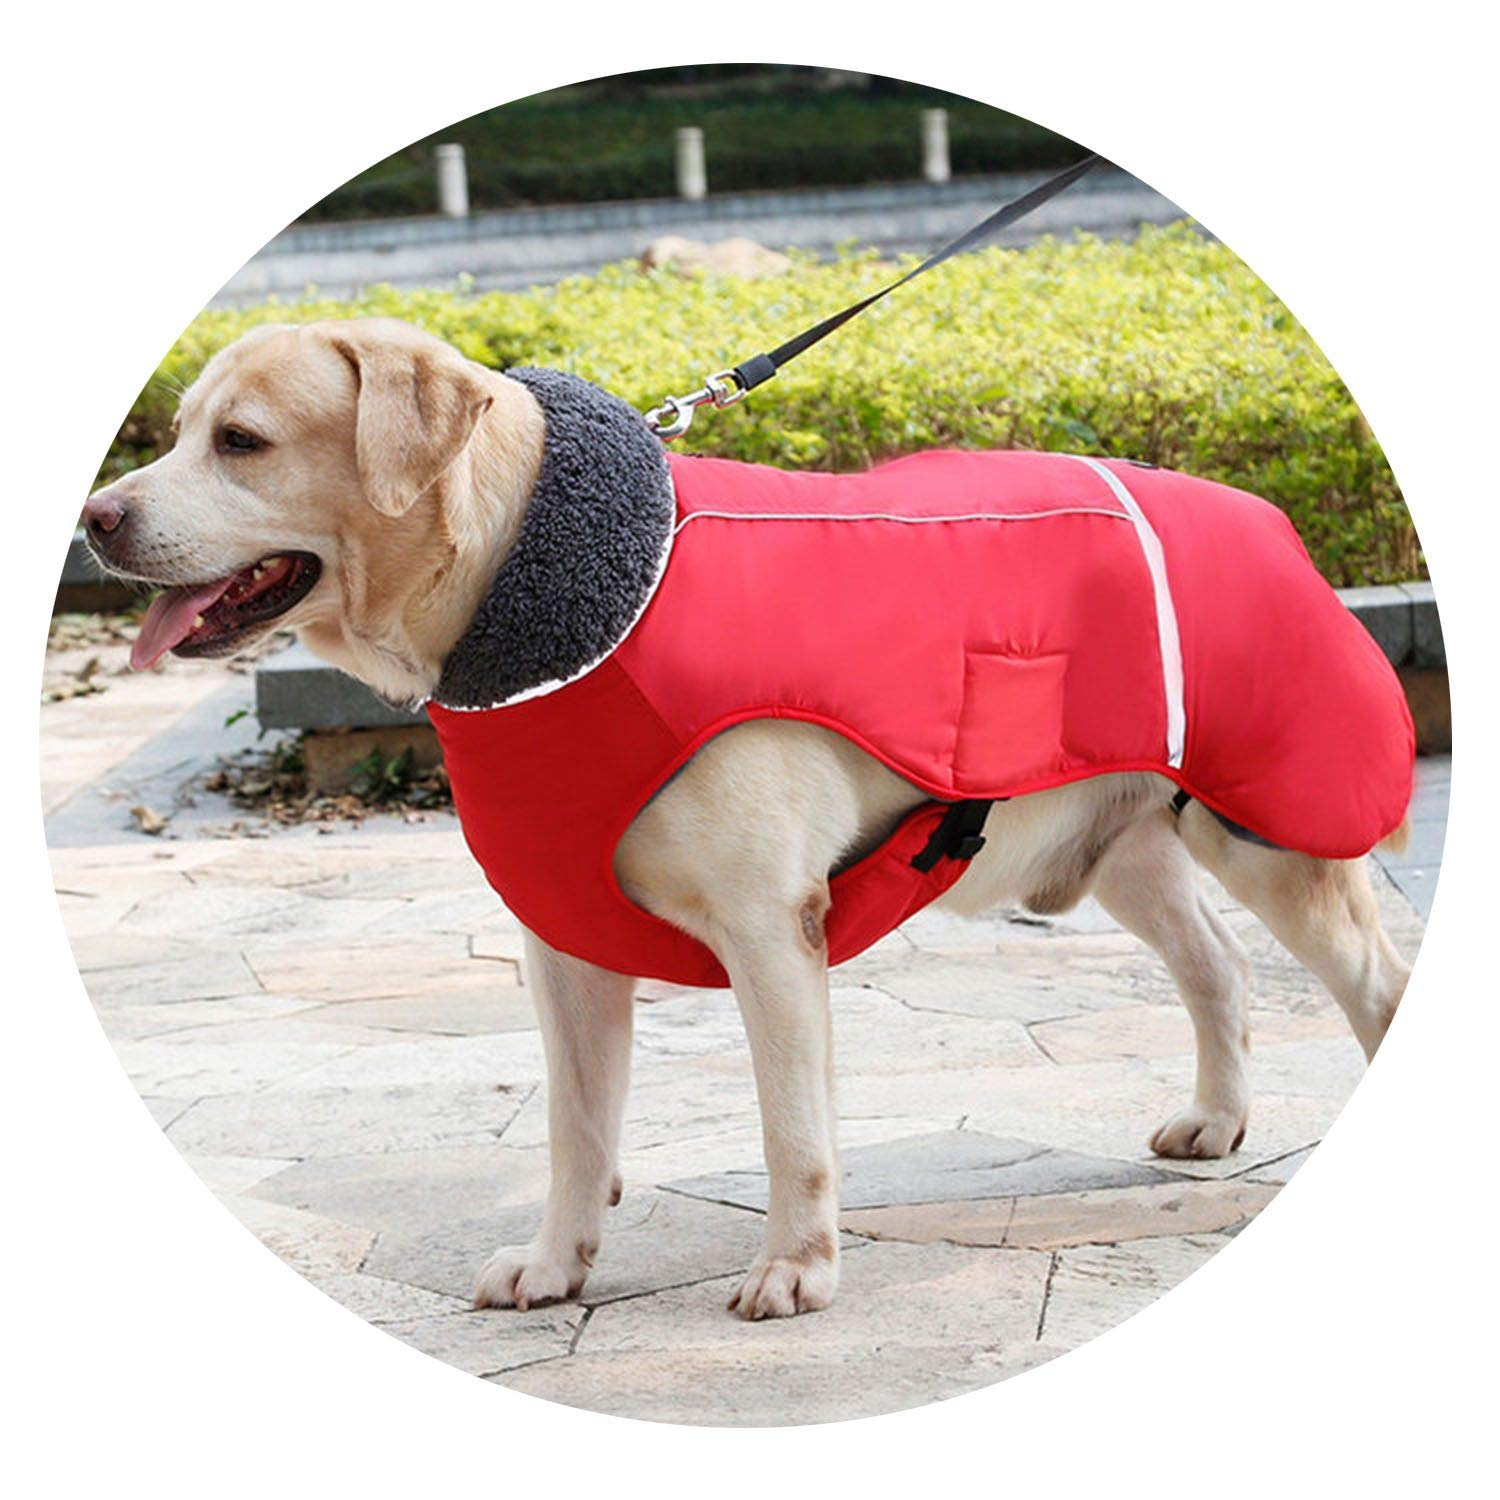 Red S red S Dog Clothes Winter Waterproof Outdoor Pet Dog Jacket Thicken Warm Dog Coat for Small Medium Large Dog Adjustable Pet Clothes 3XL,red,S